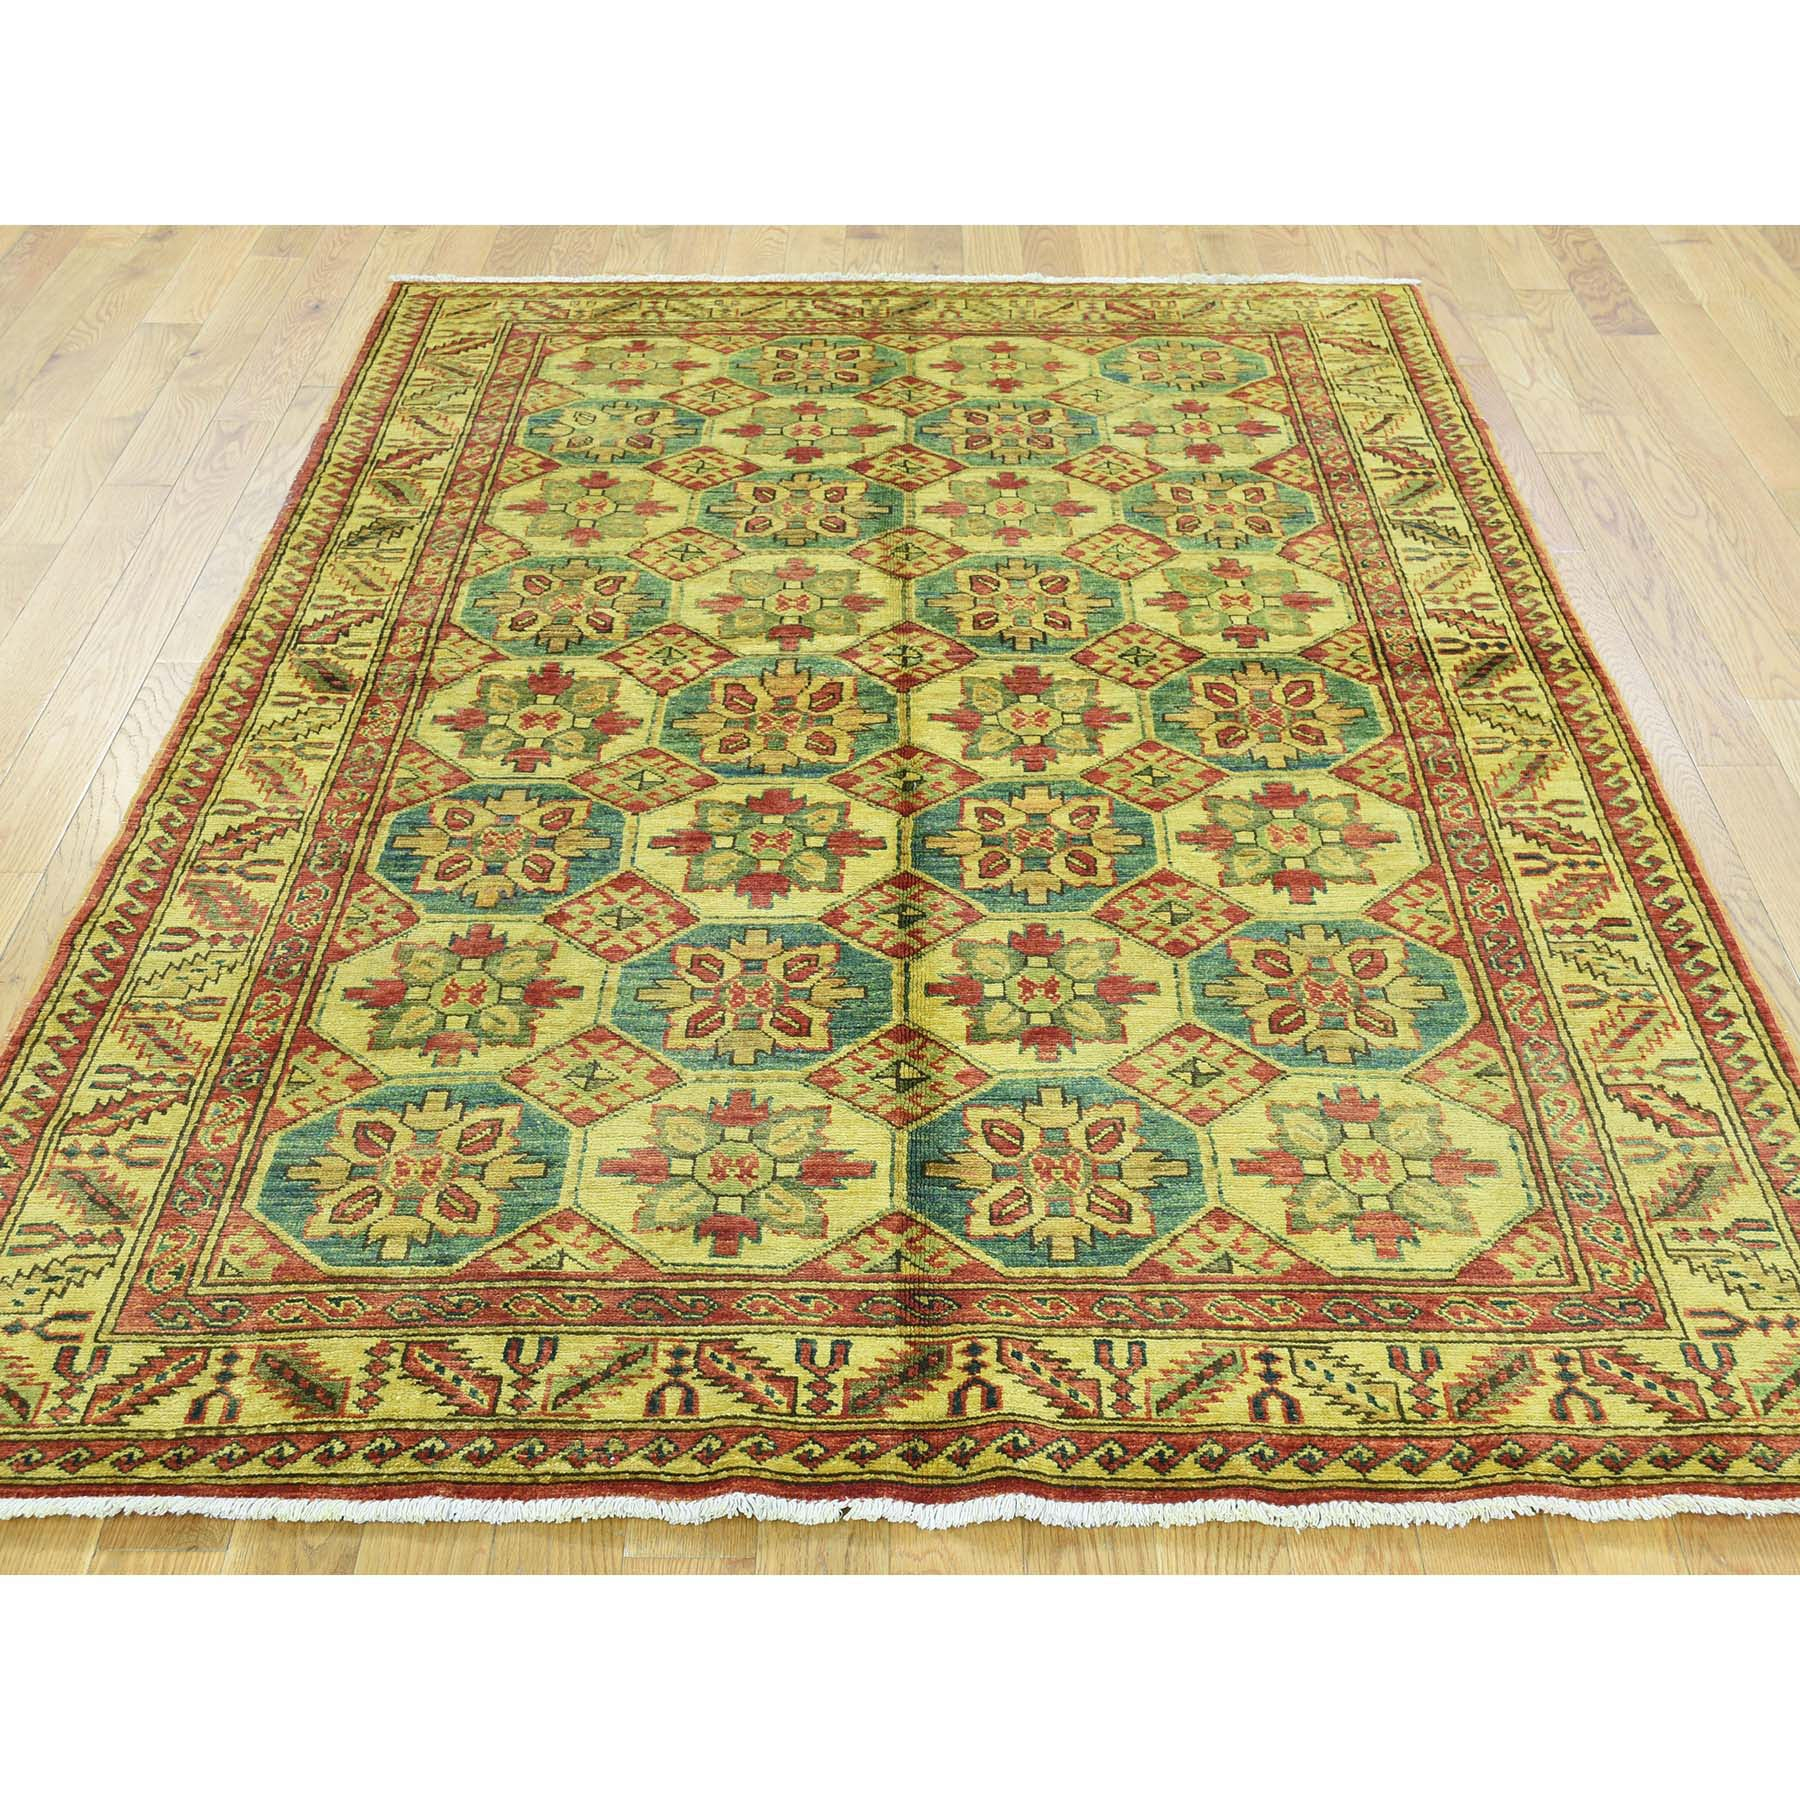 "Handmade Overdyed & Vintage Rectangle Rug > Design# SH31987 > Size: 4'-9"" x 6'-7"" [ONLINE ONLY]"